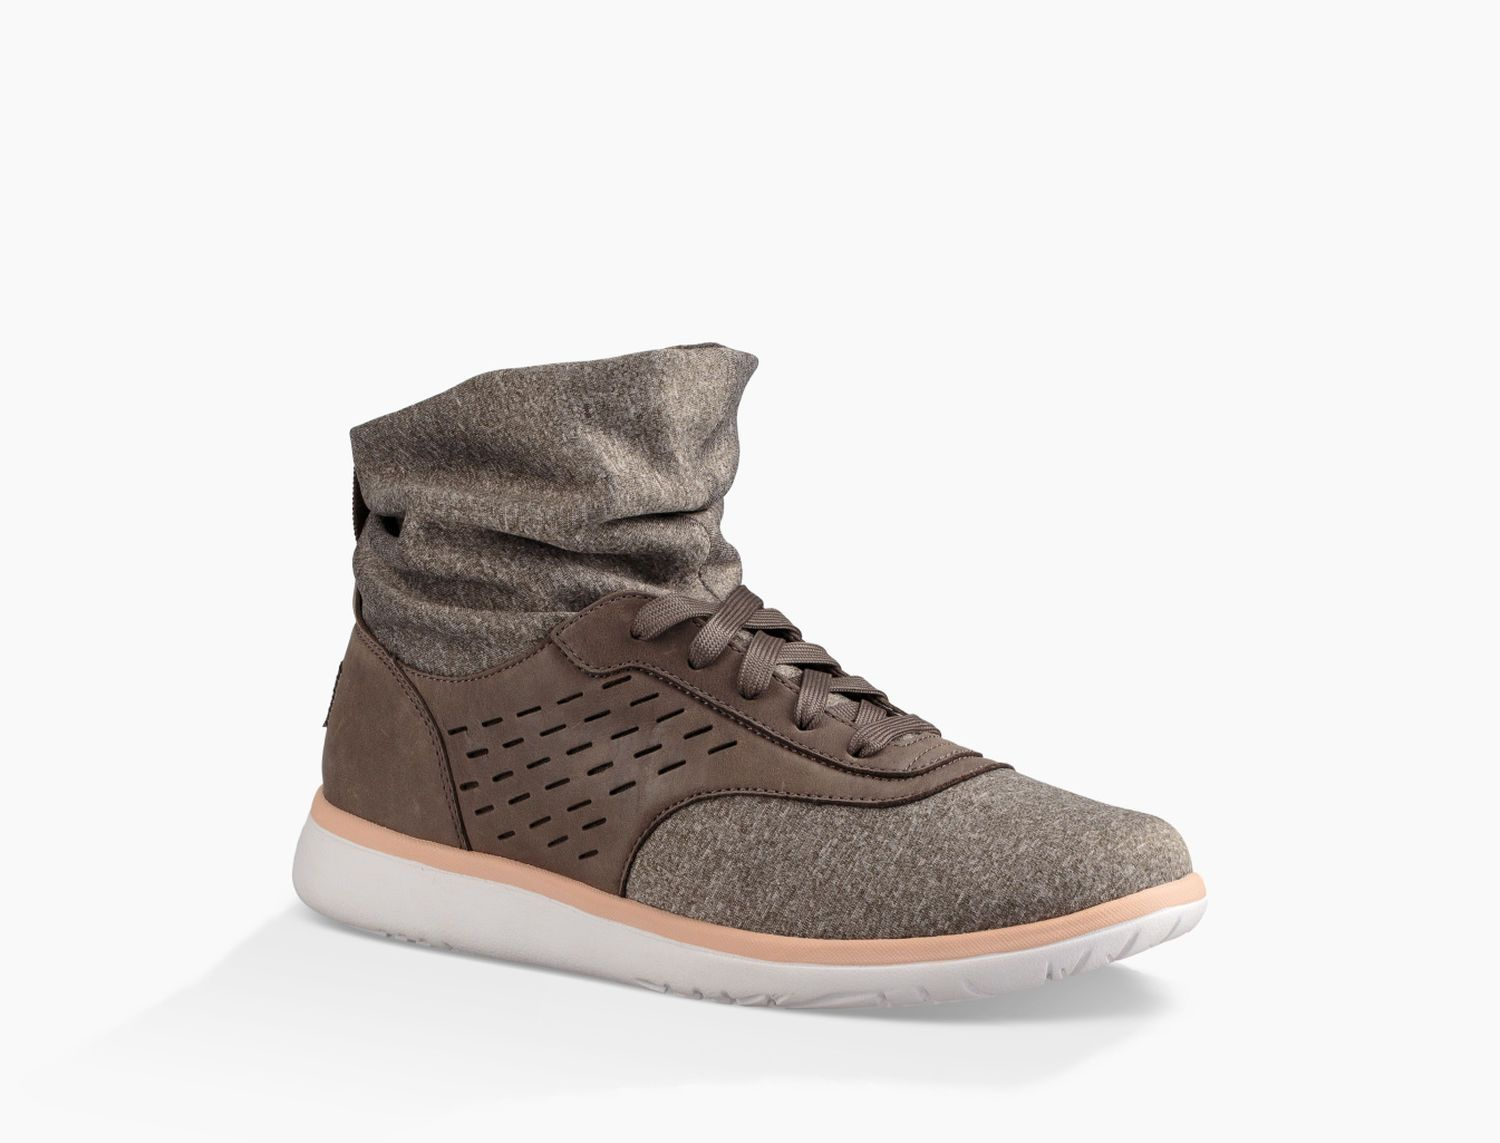 36eb2d527a1 Islay High Top Sneaker UGG   Wardrobe   Shoes, Uggs, Ugg sneakers